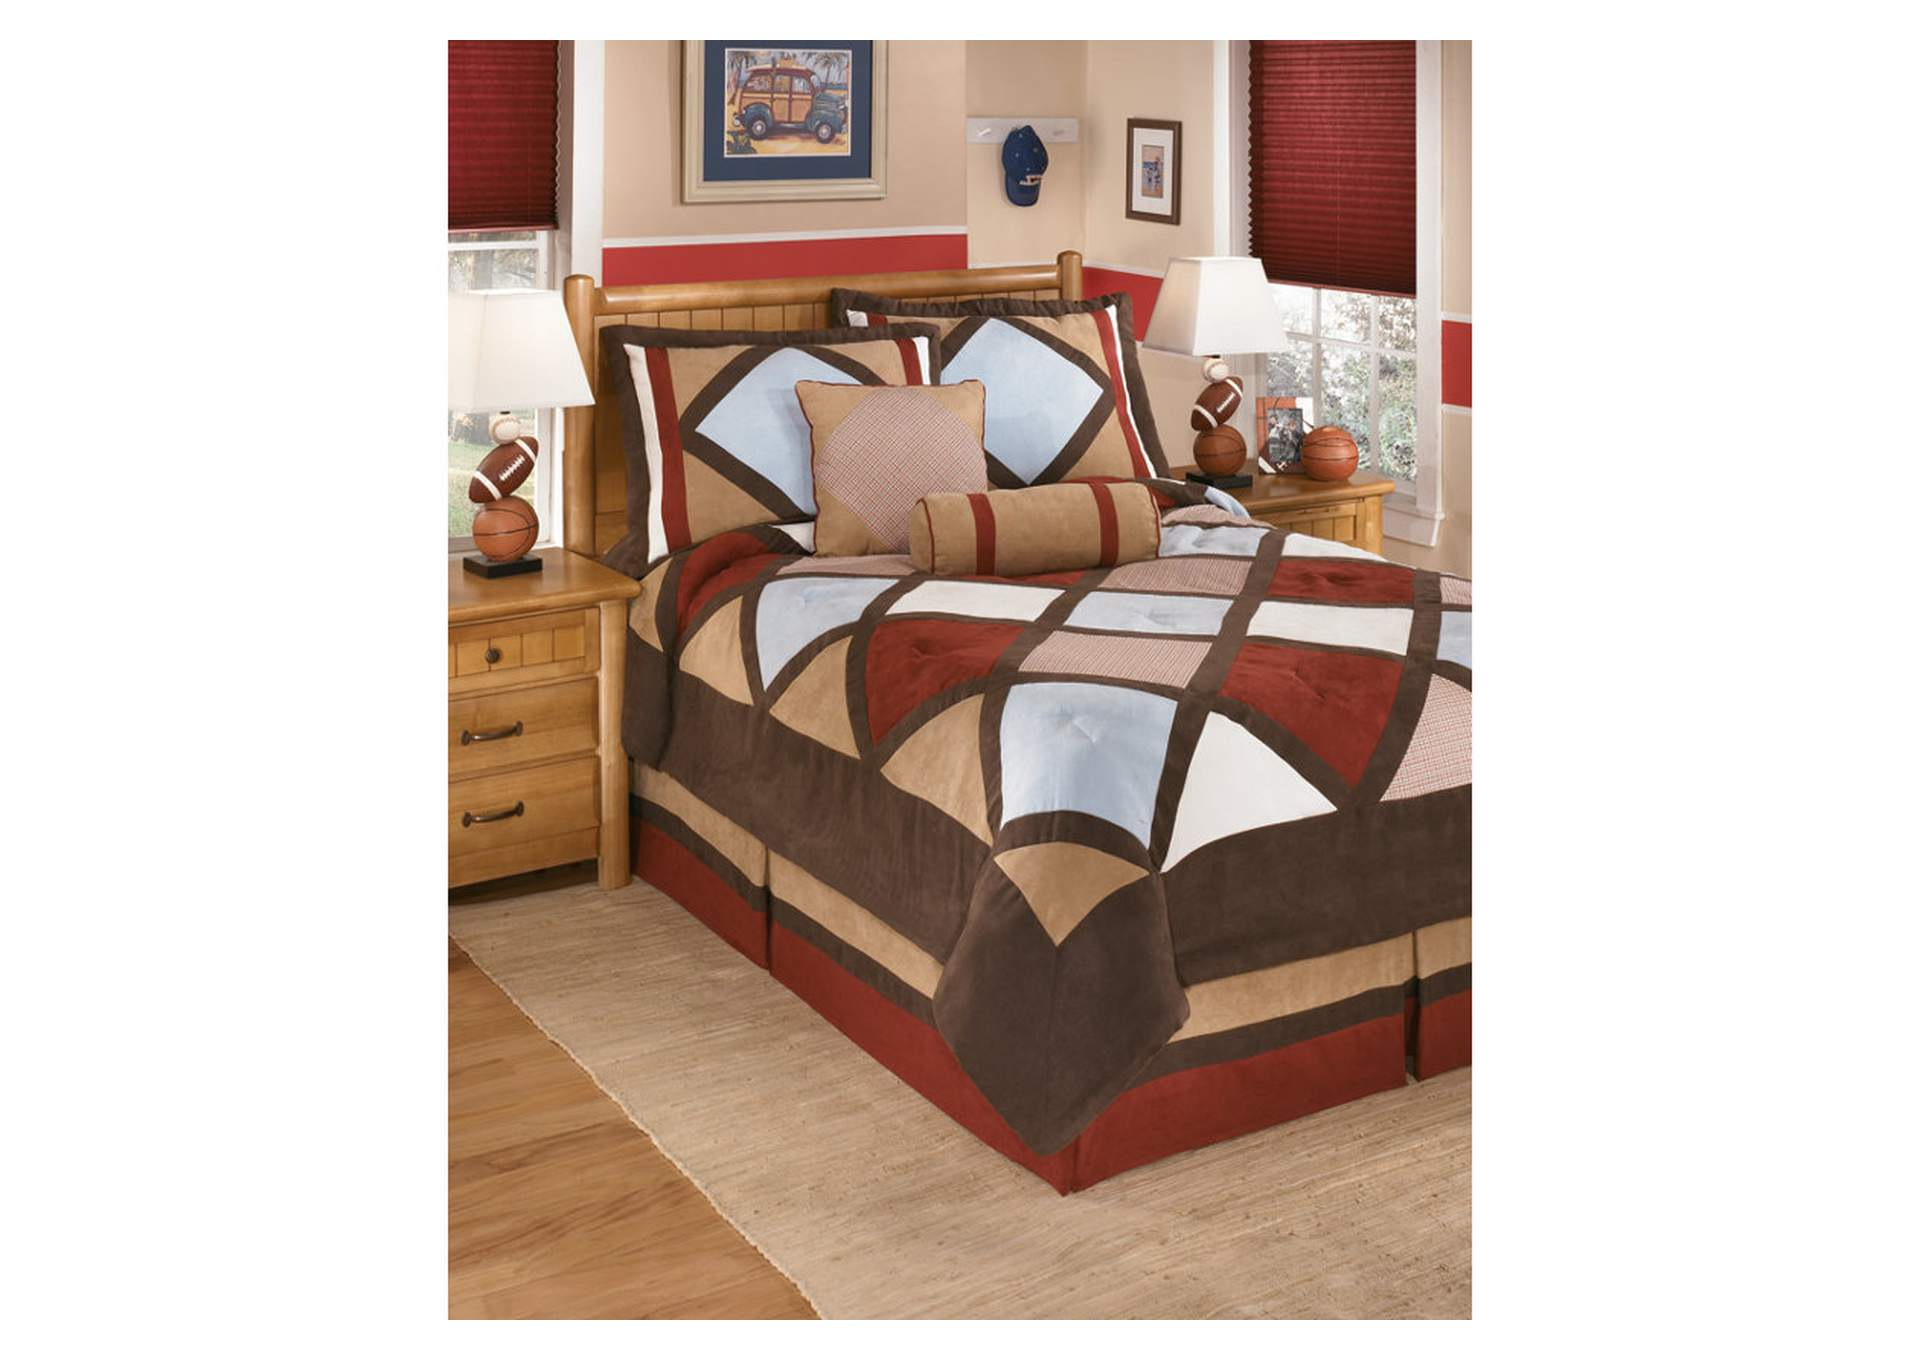 Galaxy Furniture | Chicago IL Academy Multi Full Top of Bed Set